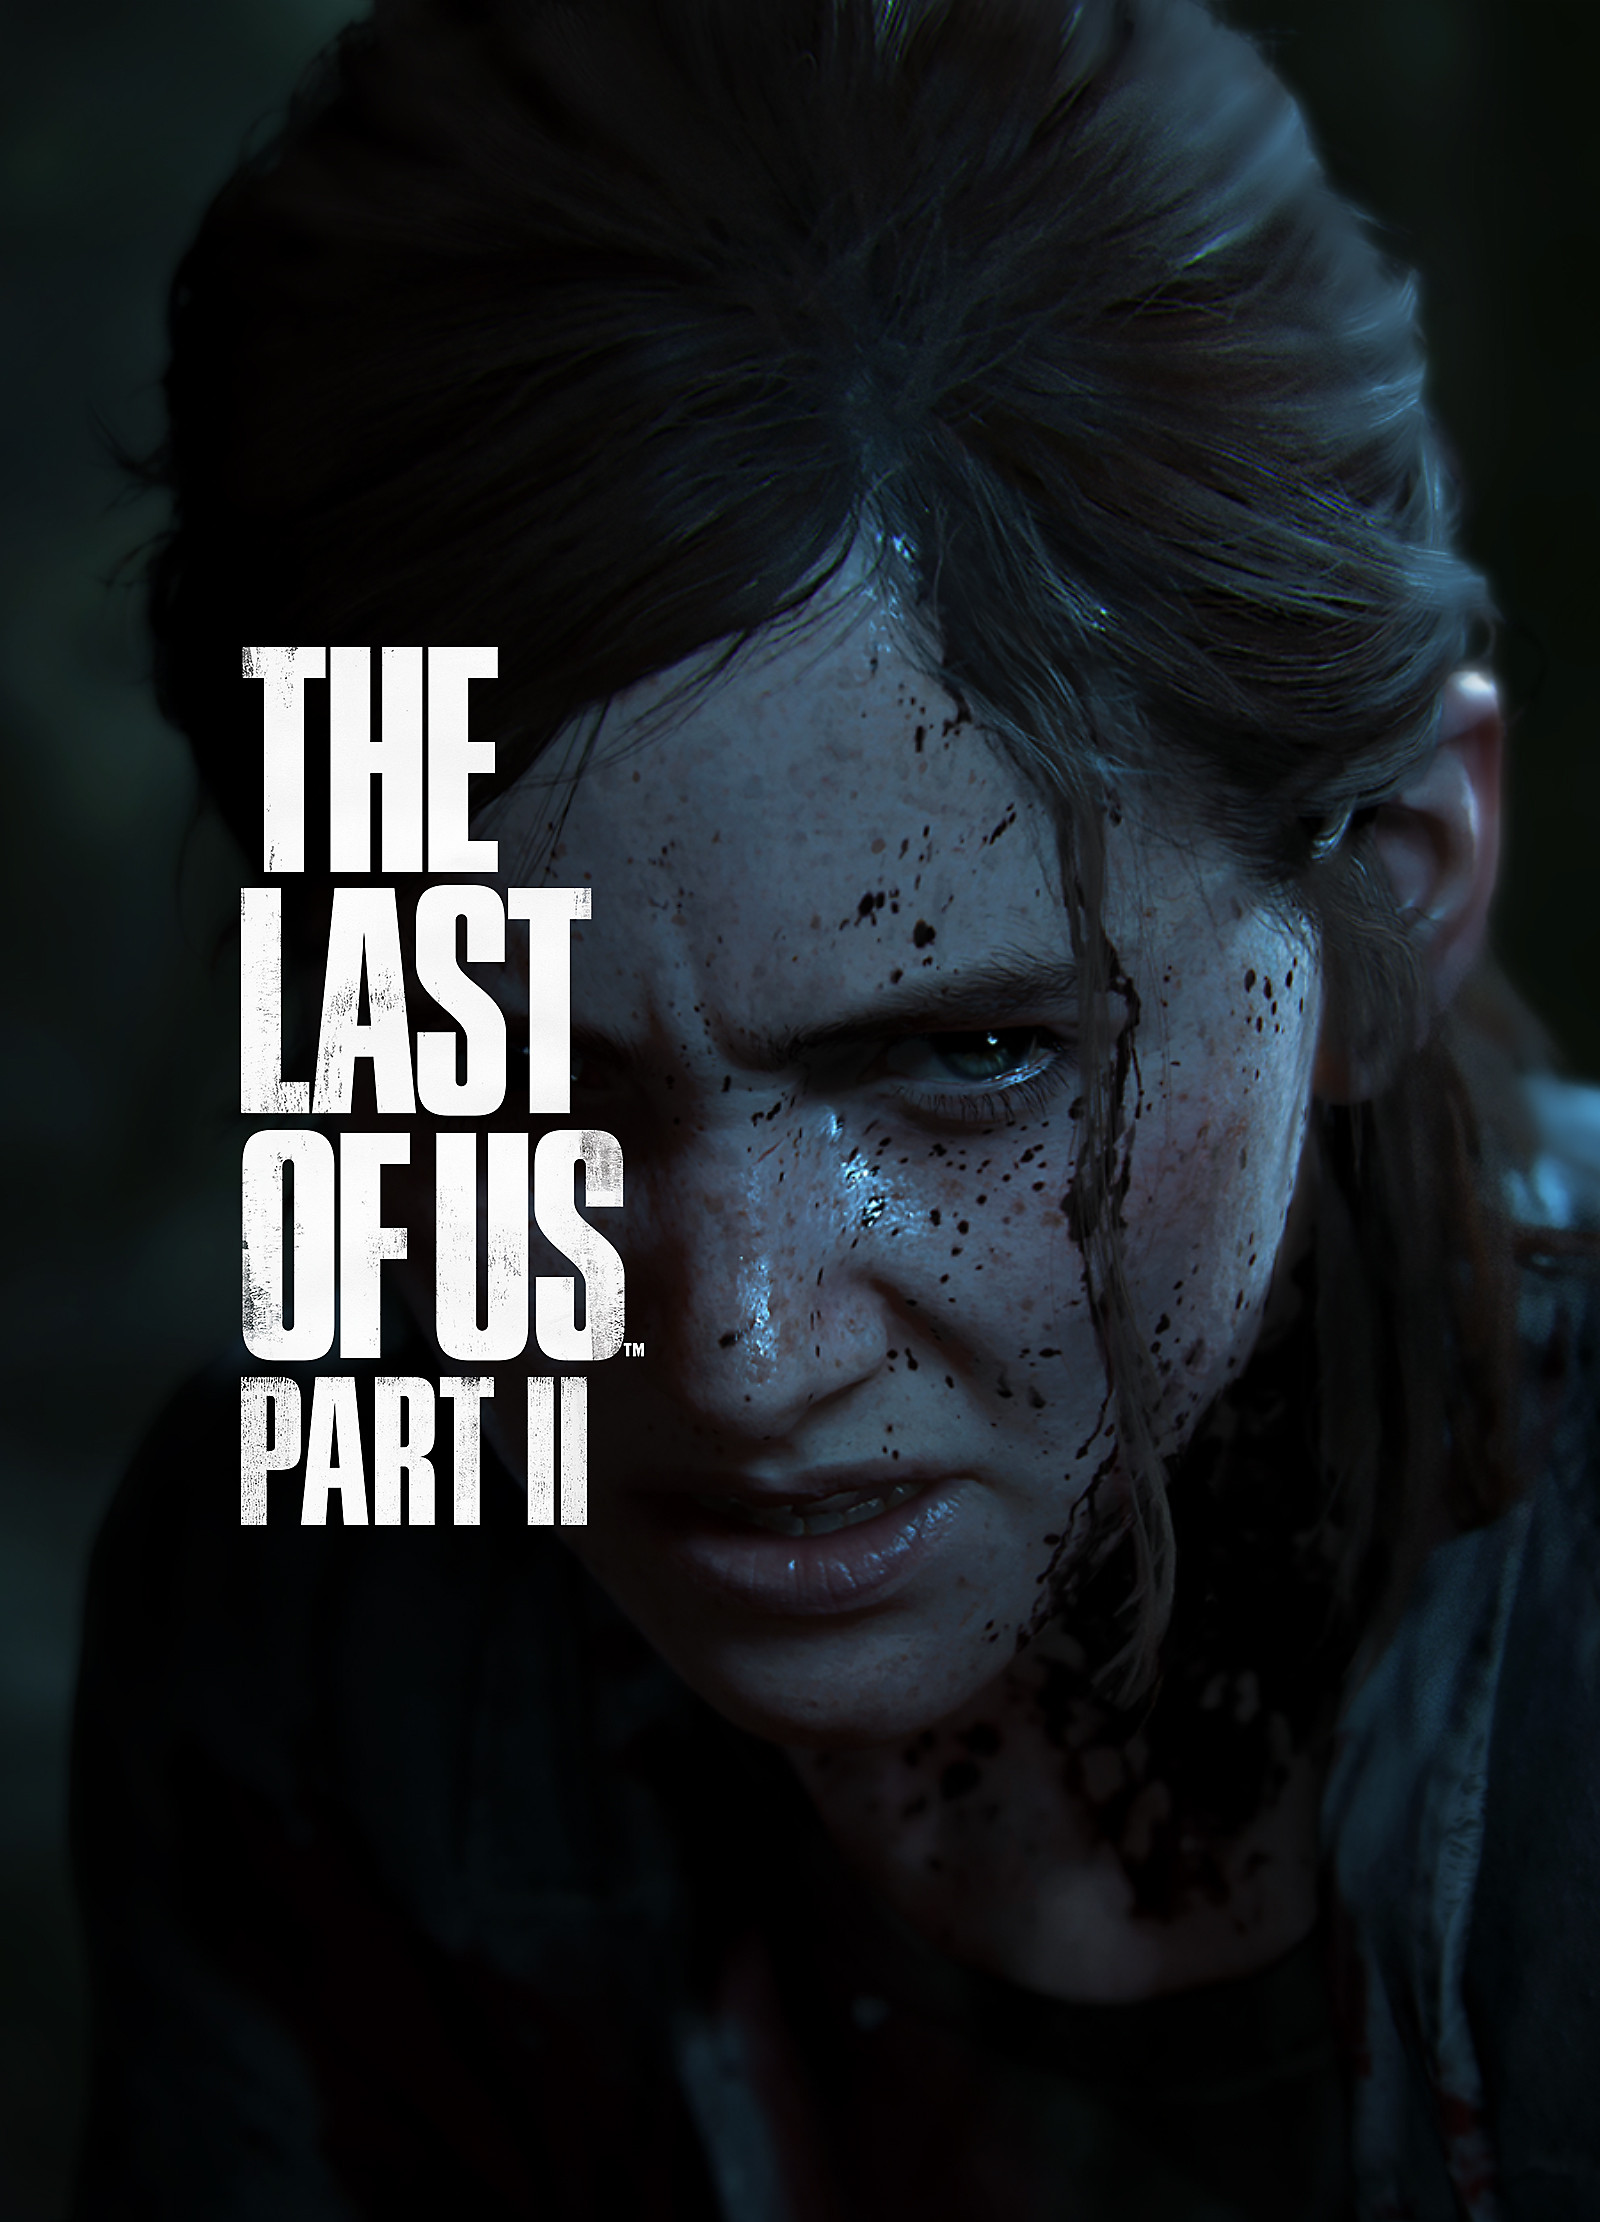 The Last of Us Part II Poster Art